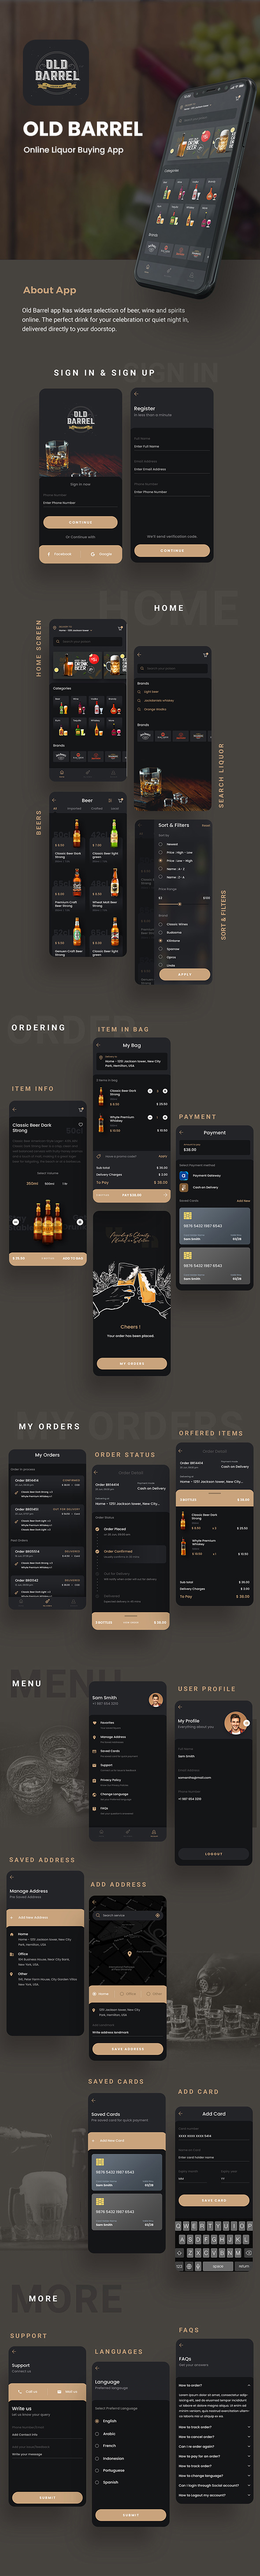 Online Liquor Buying Android App + iOS App Template   IONIC 5   OLD BARREL - 4